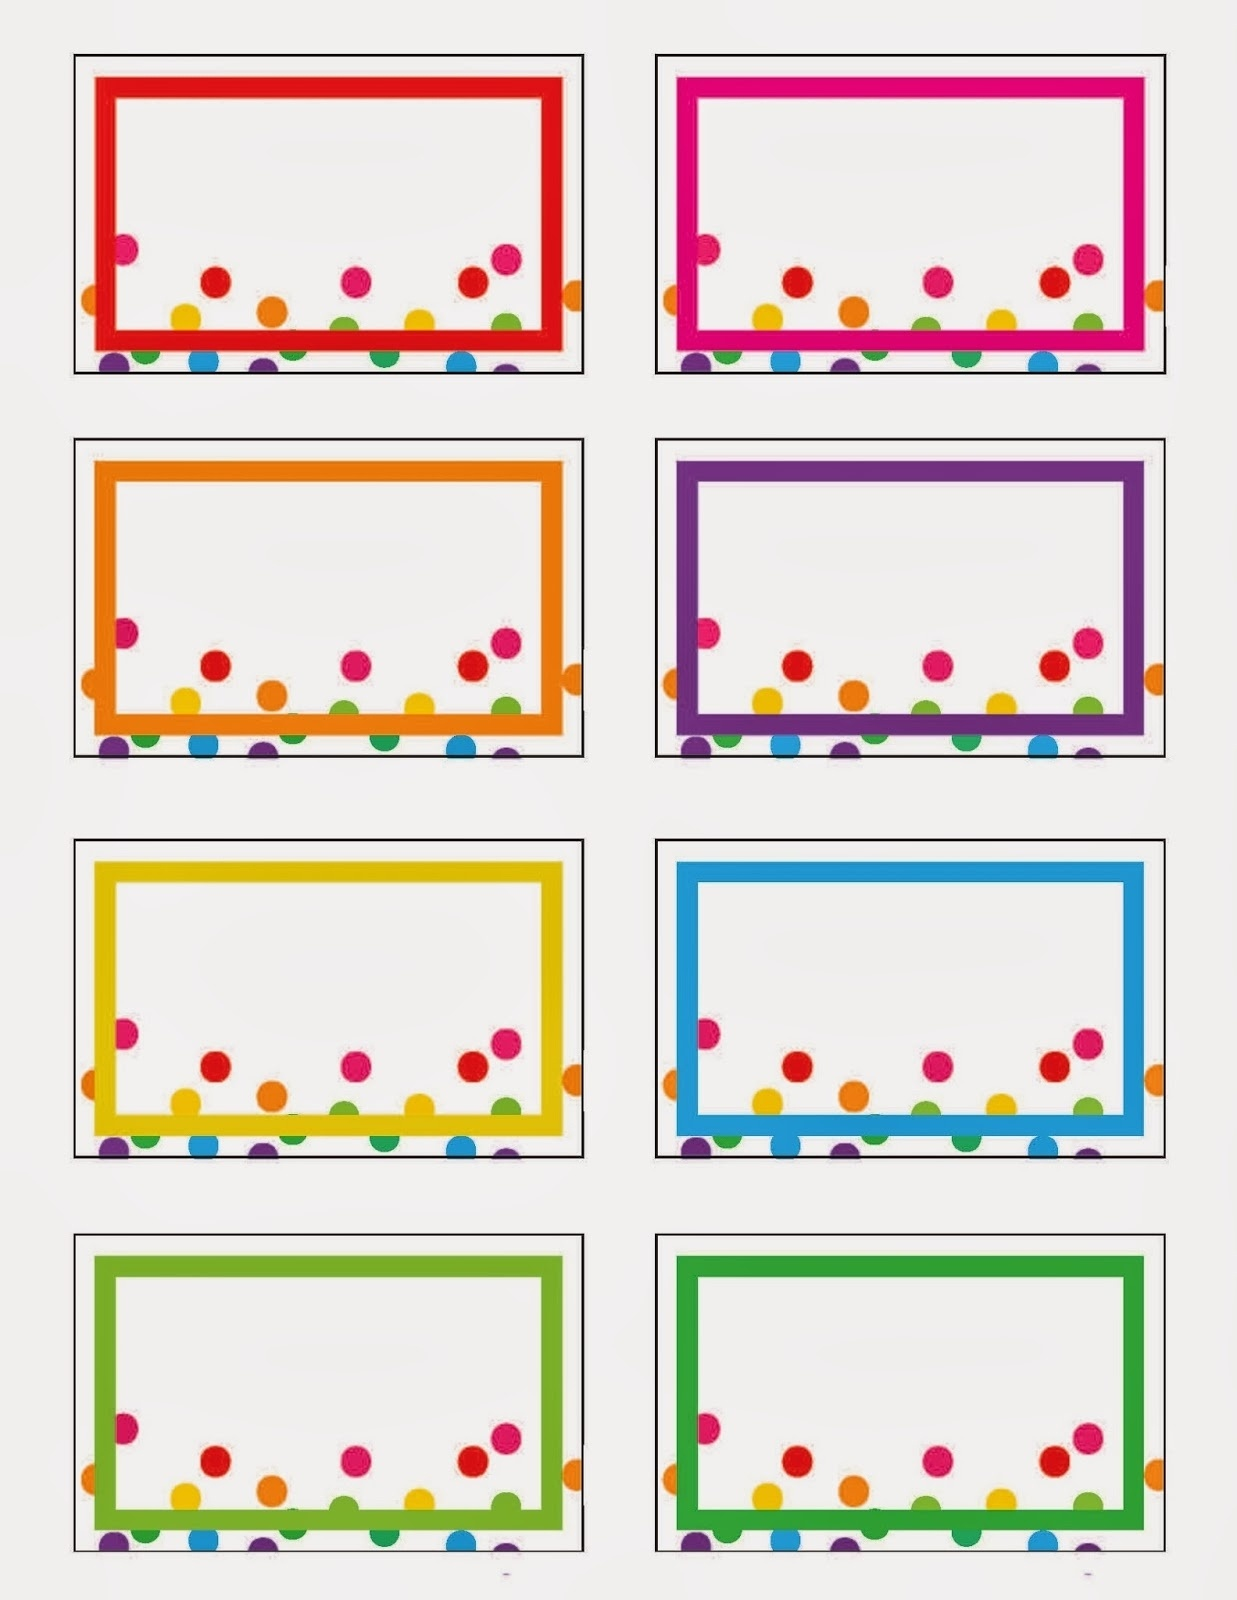 013 Free Printable Rainbow Label Templates Within For Kids Template - Free Printable Label Templates